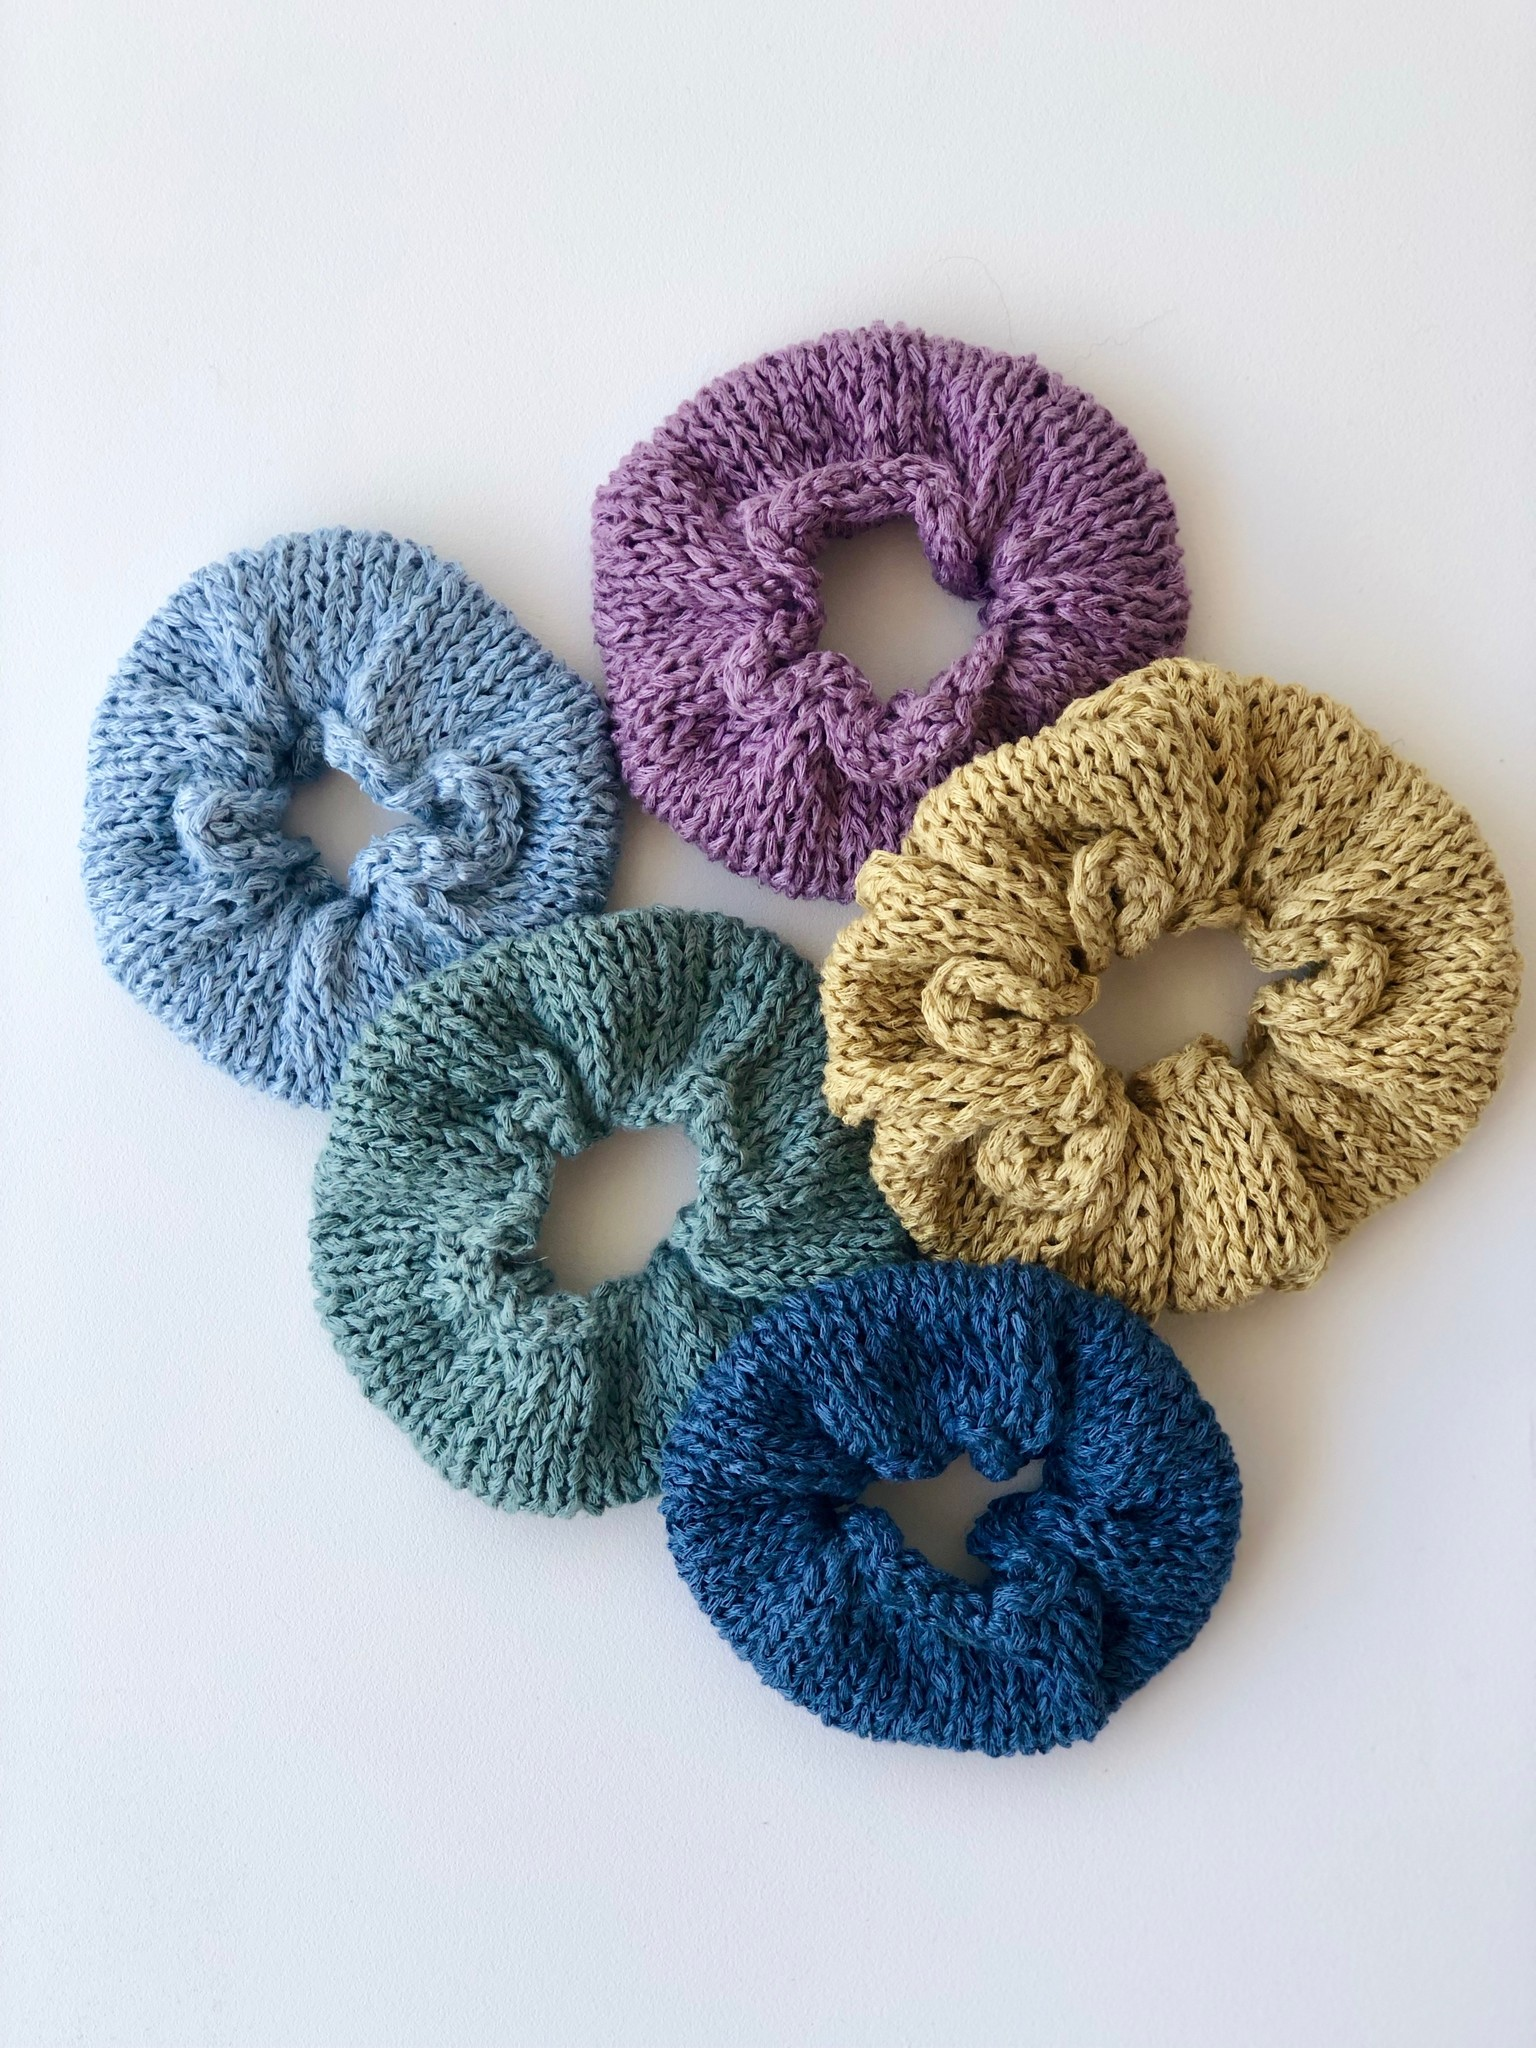 Linen Scrunchie Kit